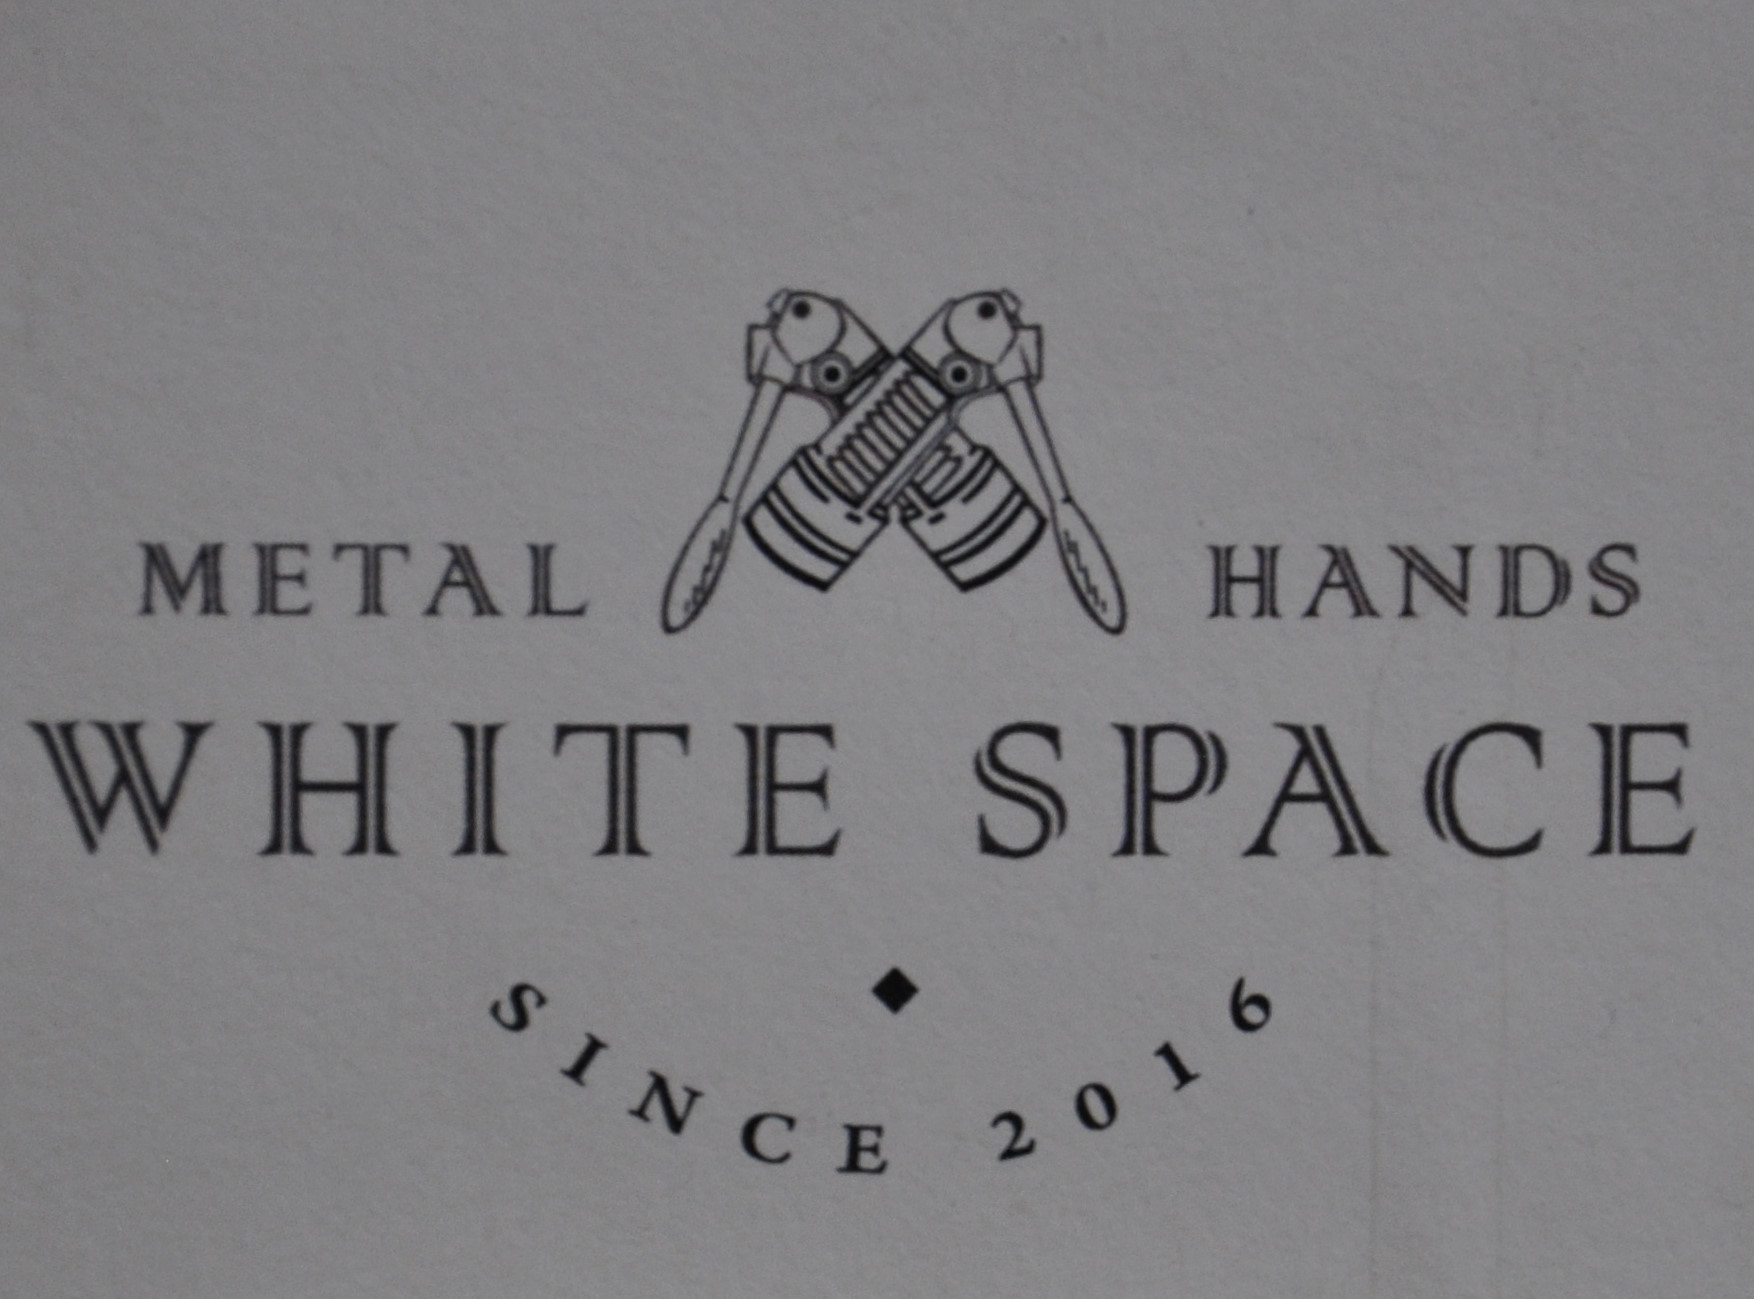 The logo of Metal Hands White Space from the menu,